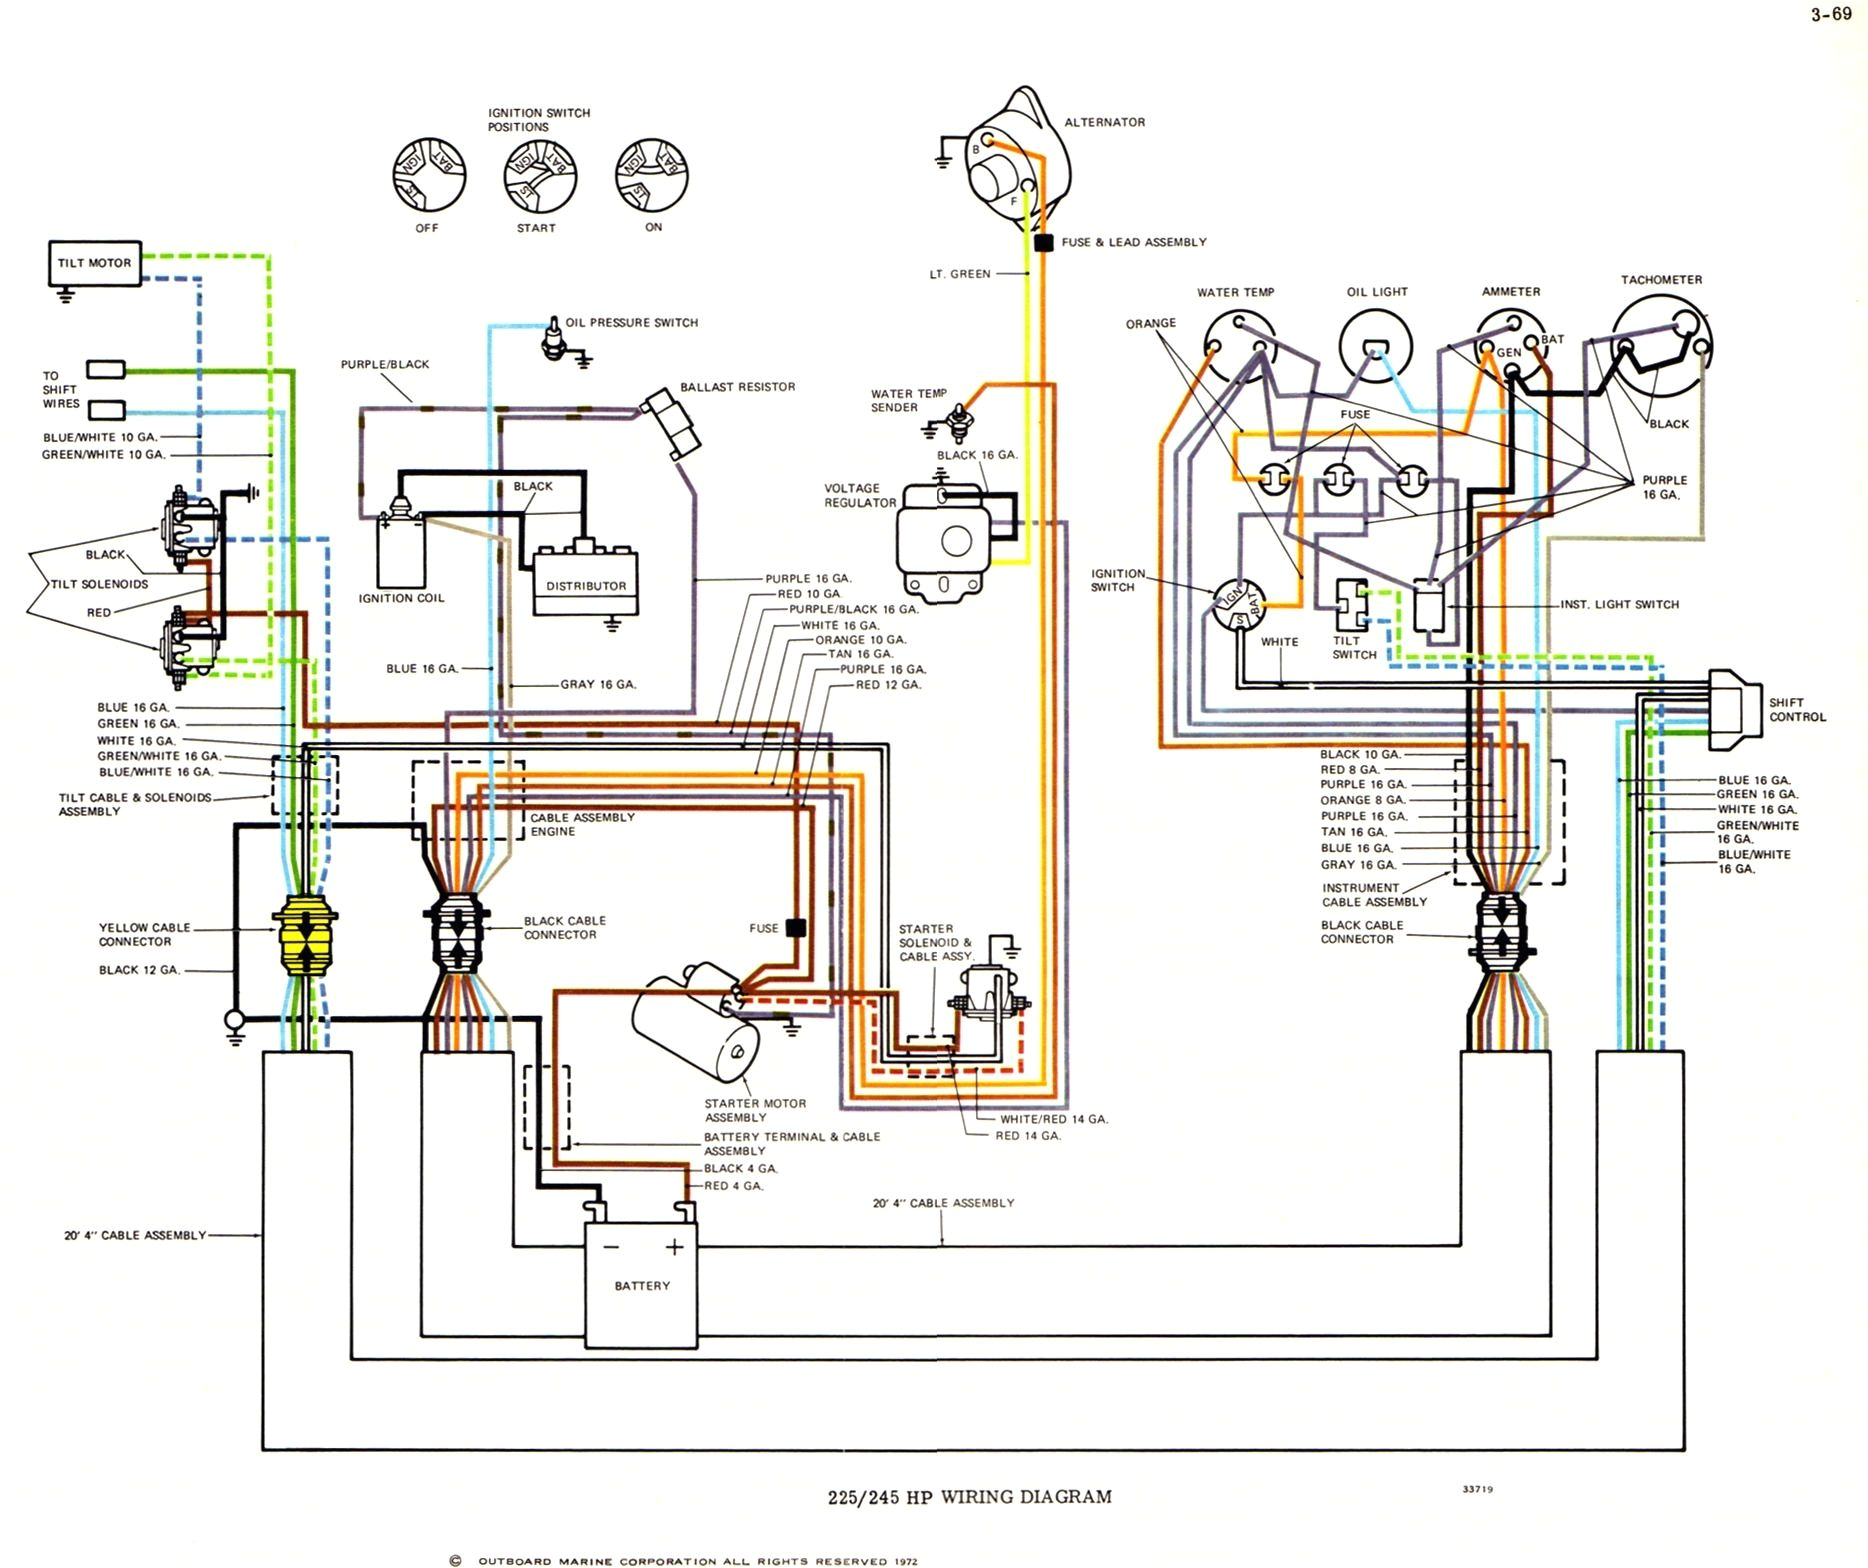 yamaha outboard wiring diagram wiring diagram database yamaha outboard wiring harness diagram photo album diagrams